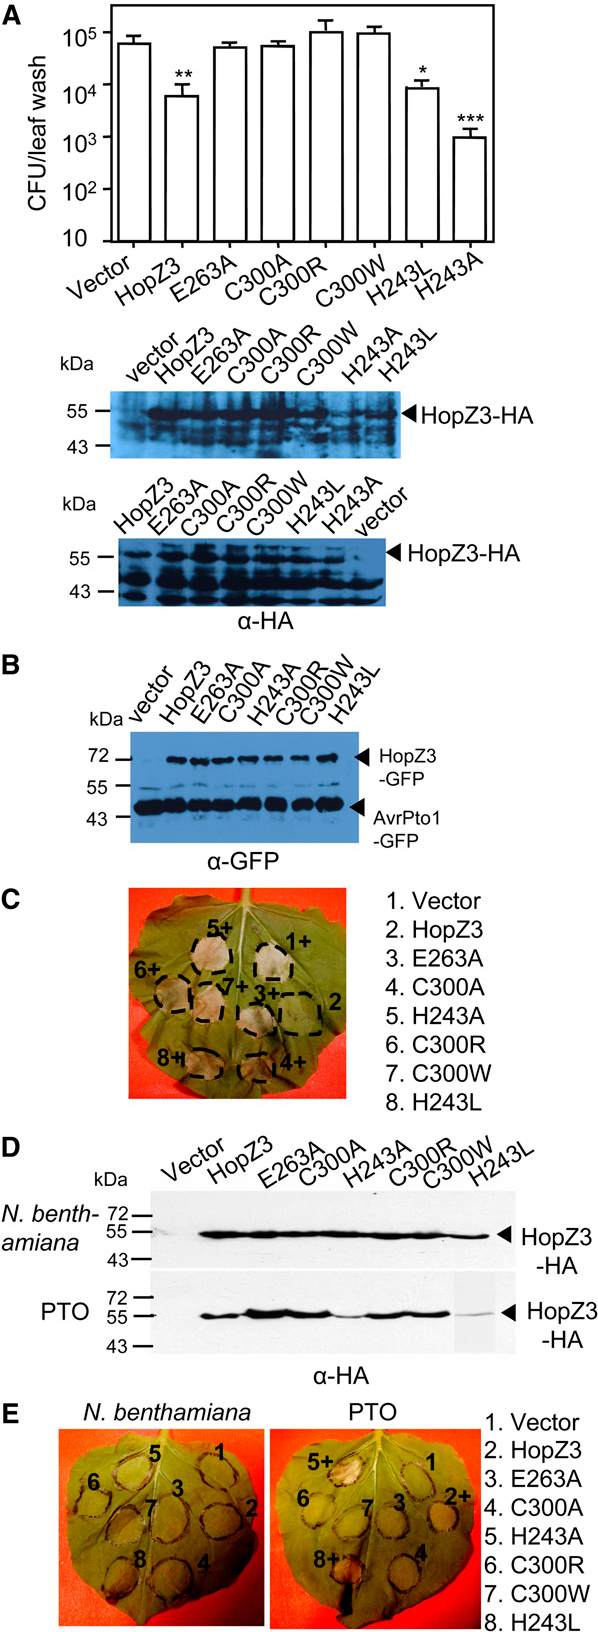 Figure 9. Conserved potential catalytic residues of HopZ3 are important for the function of HopZ3. A, Cys 300 and Glu 263 were important for HopZ3's effect on epiphytic bacteria growth. HopZ3- complemented with HopZ3-HA and HA-epitope-tagged point mutants driven by the constitutive npt2 promoter were sprayed onto N. benthamiana at an